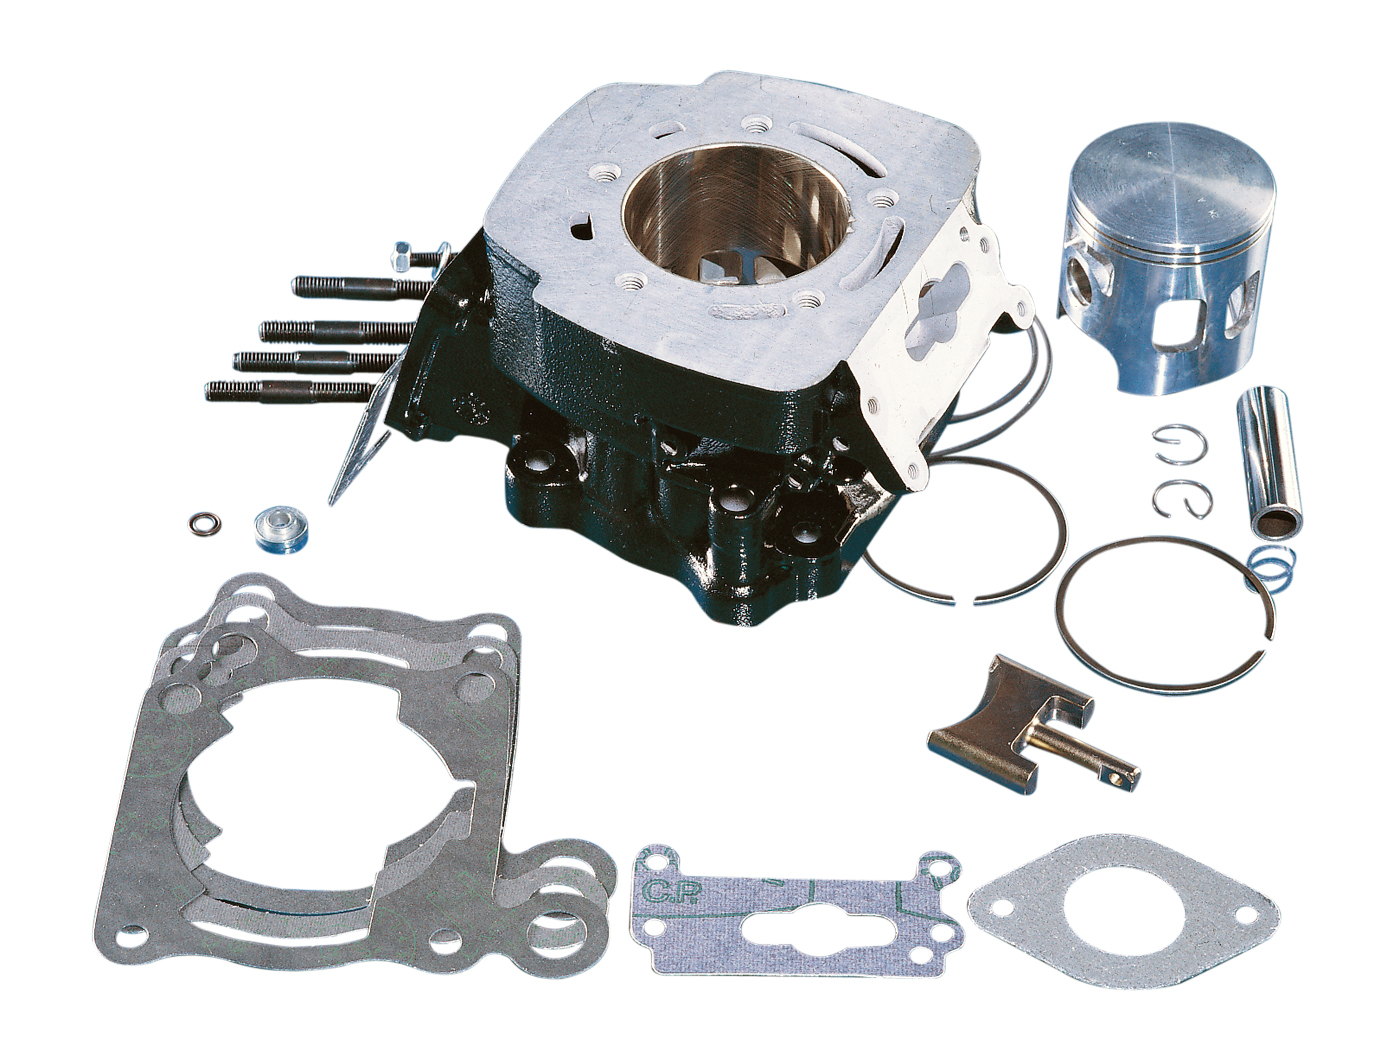 Cylinder Kit Polini 64mm 165cc For Cagiva Mito 125 Motorkit Power Valve Wiring